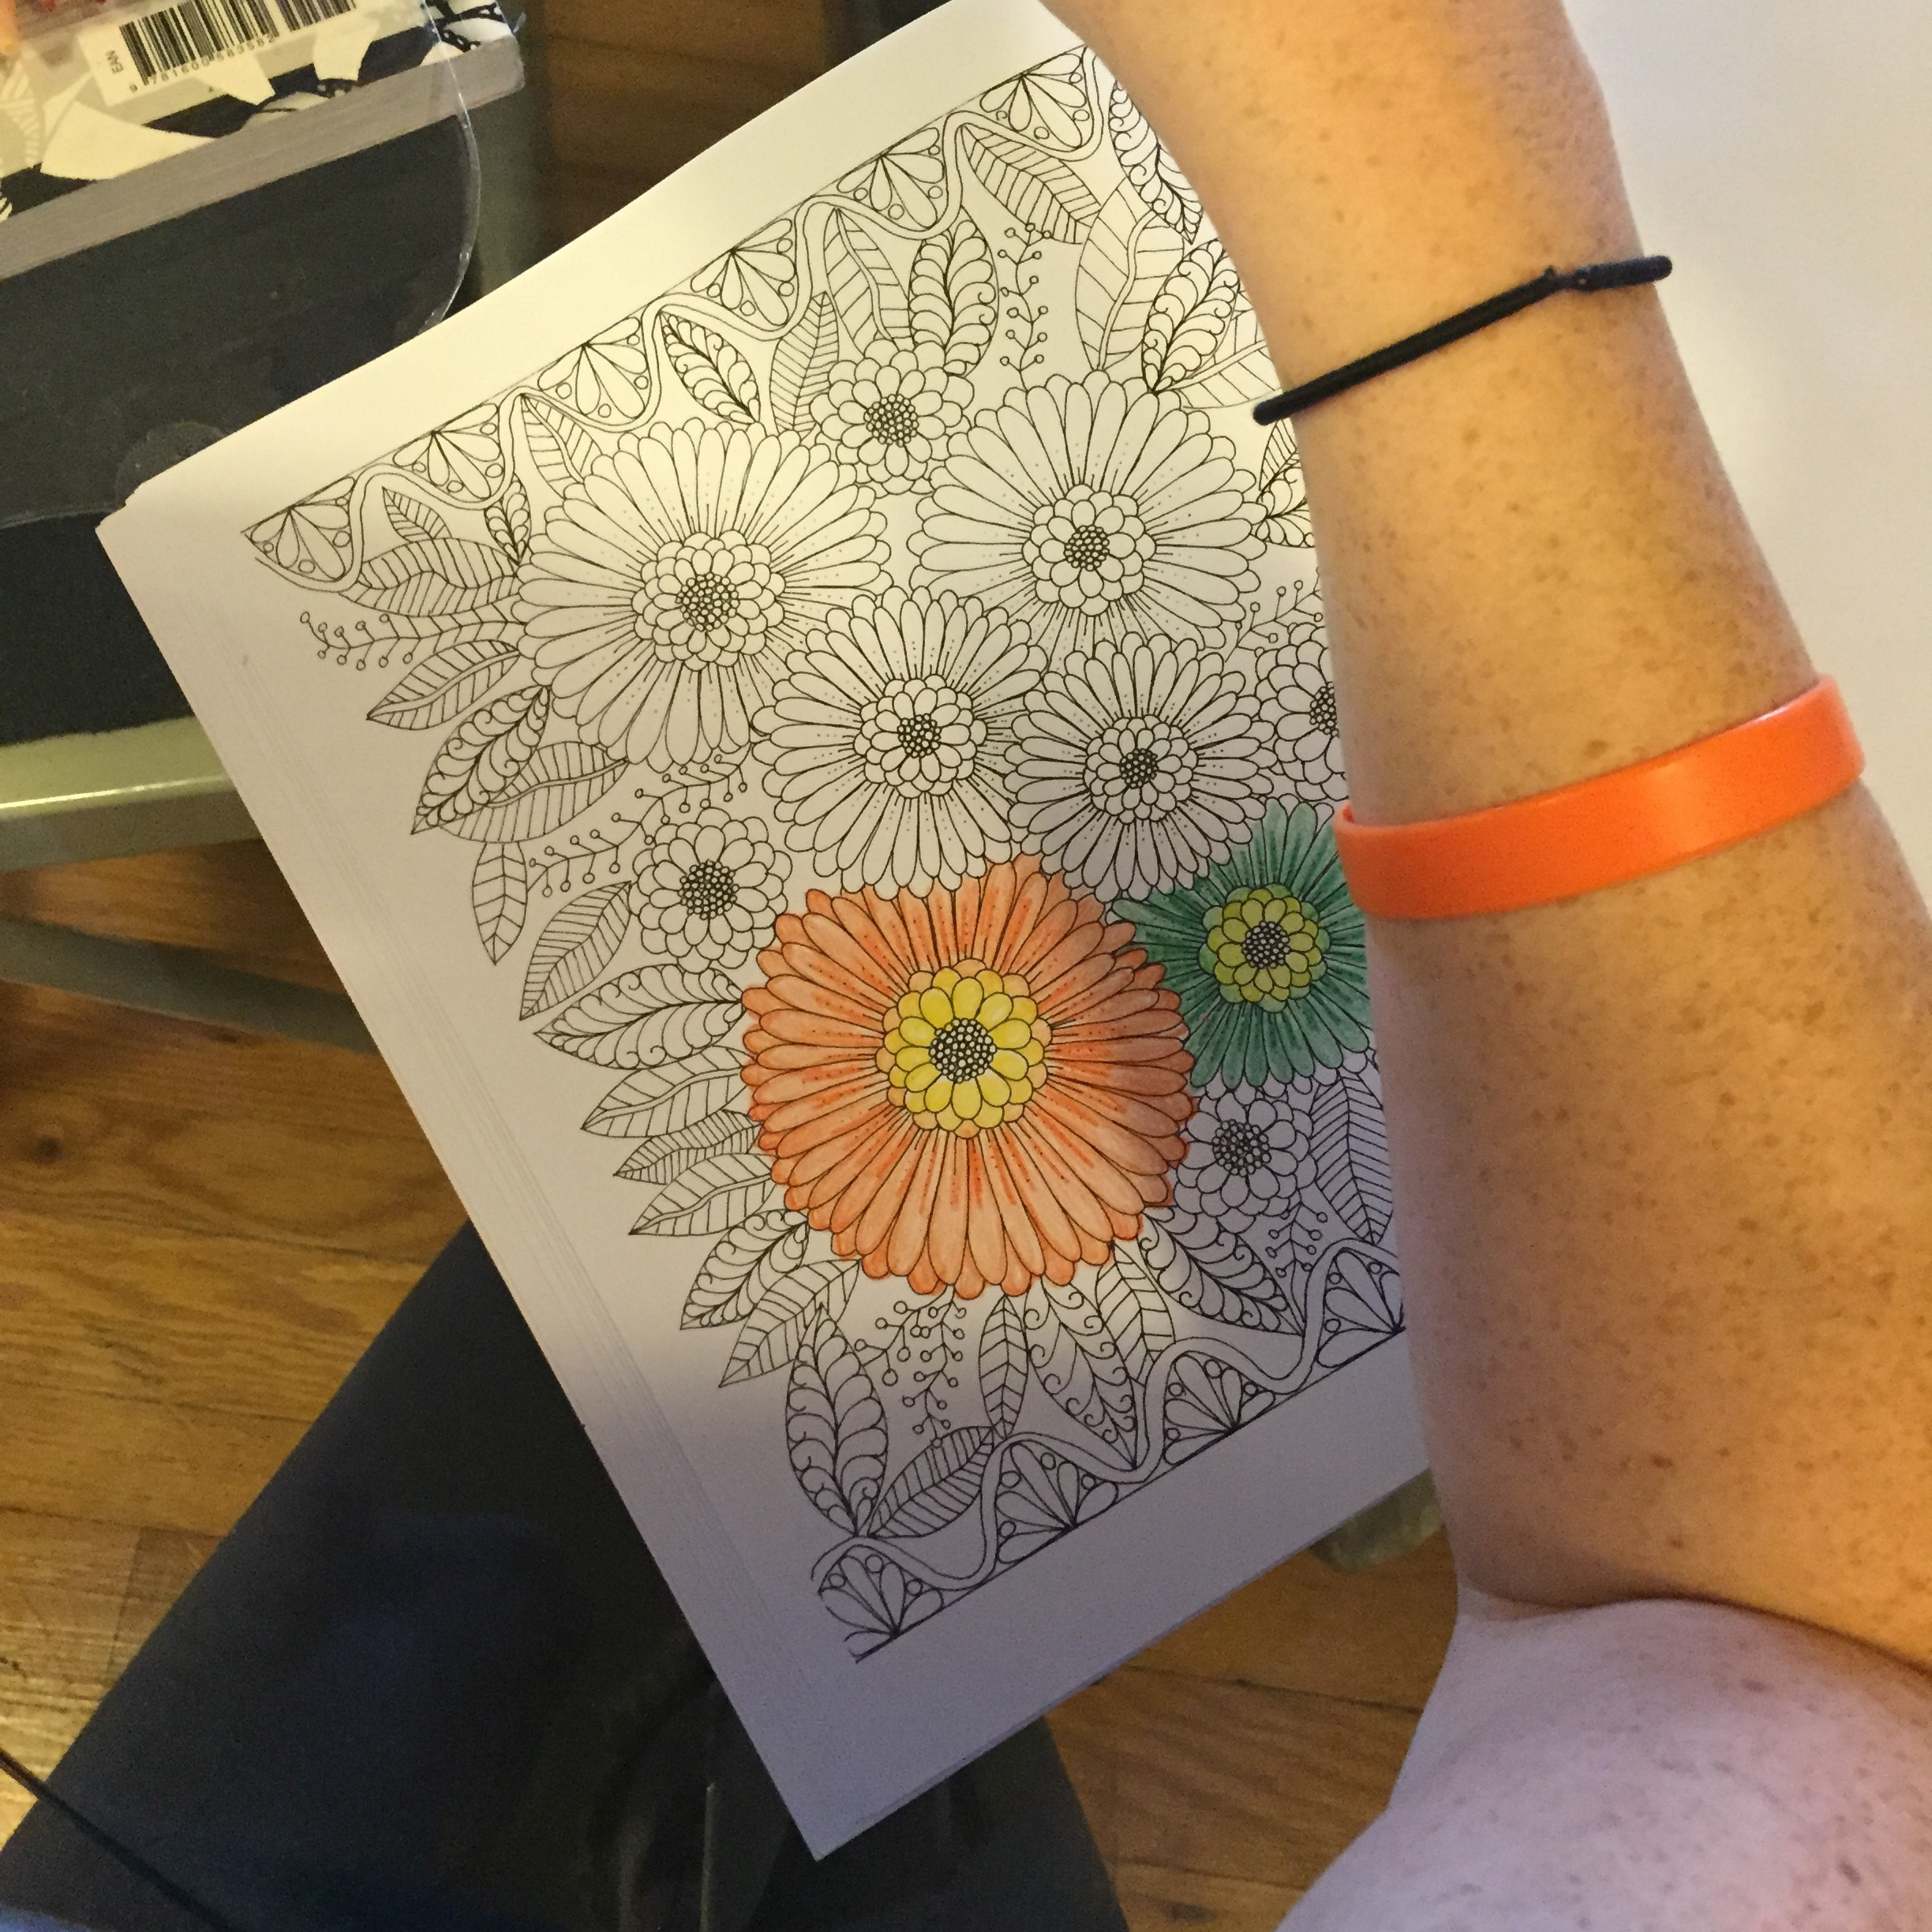 more coloring: it's the new  meditation .